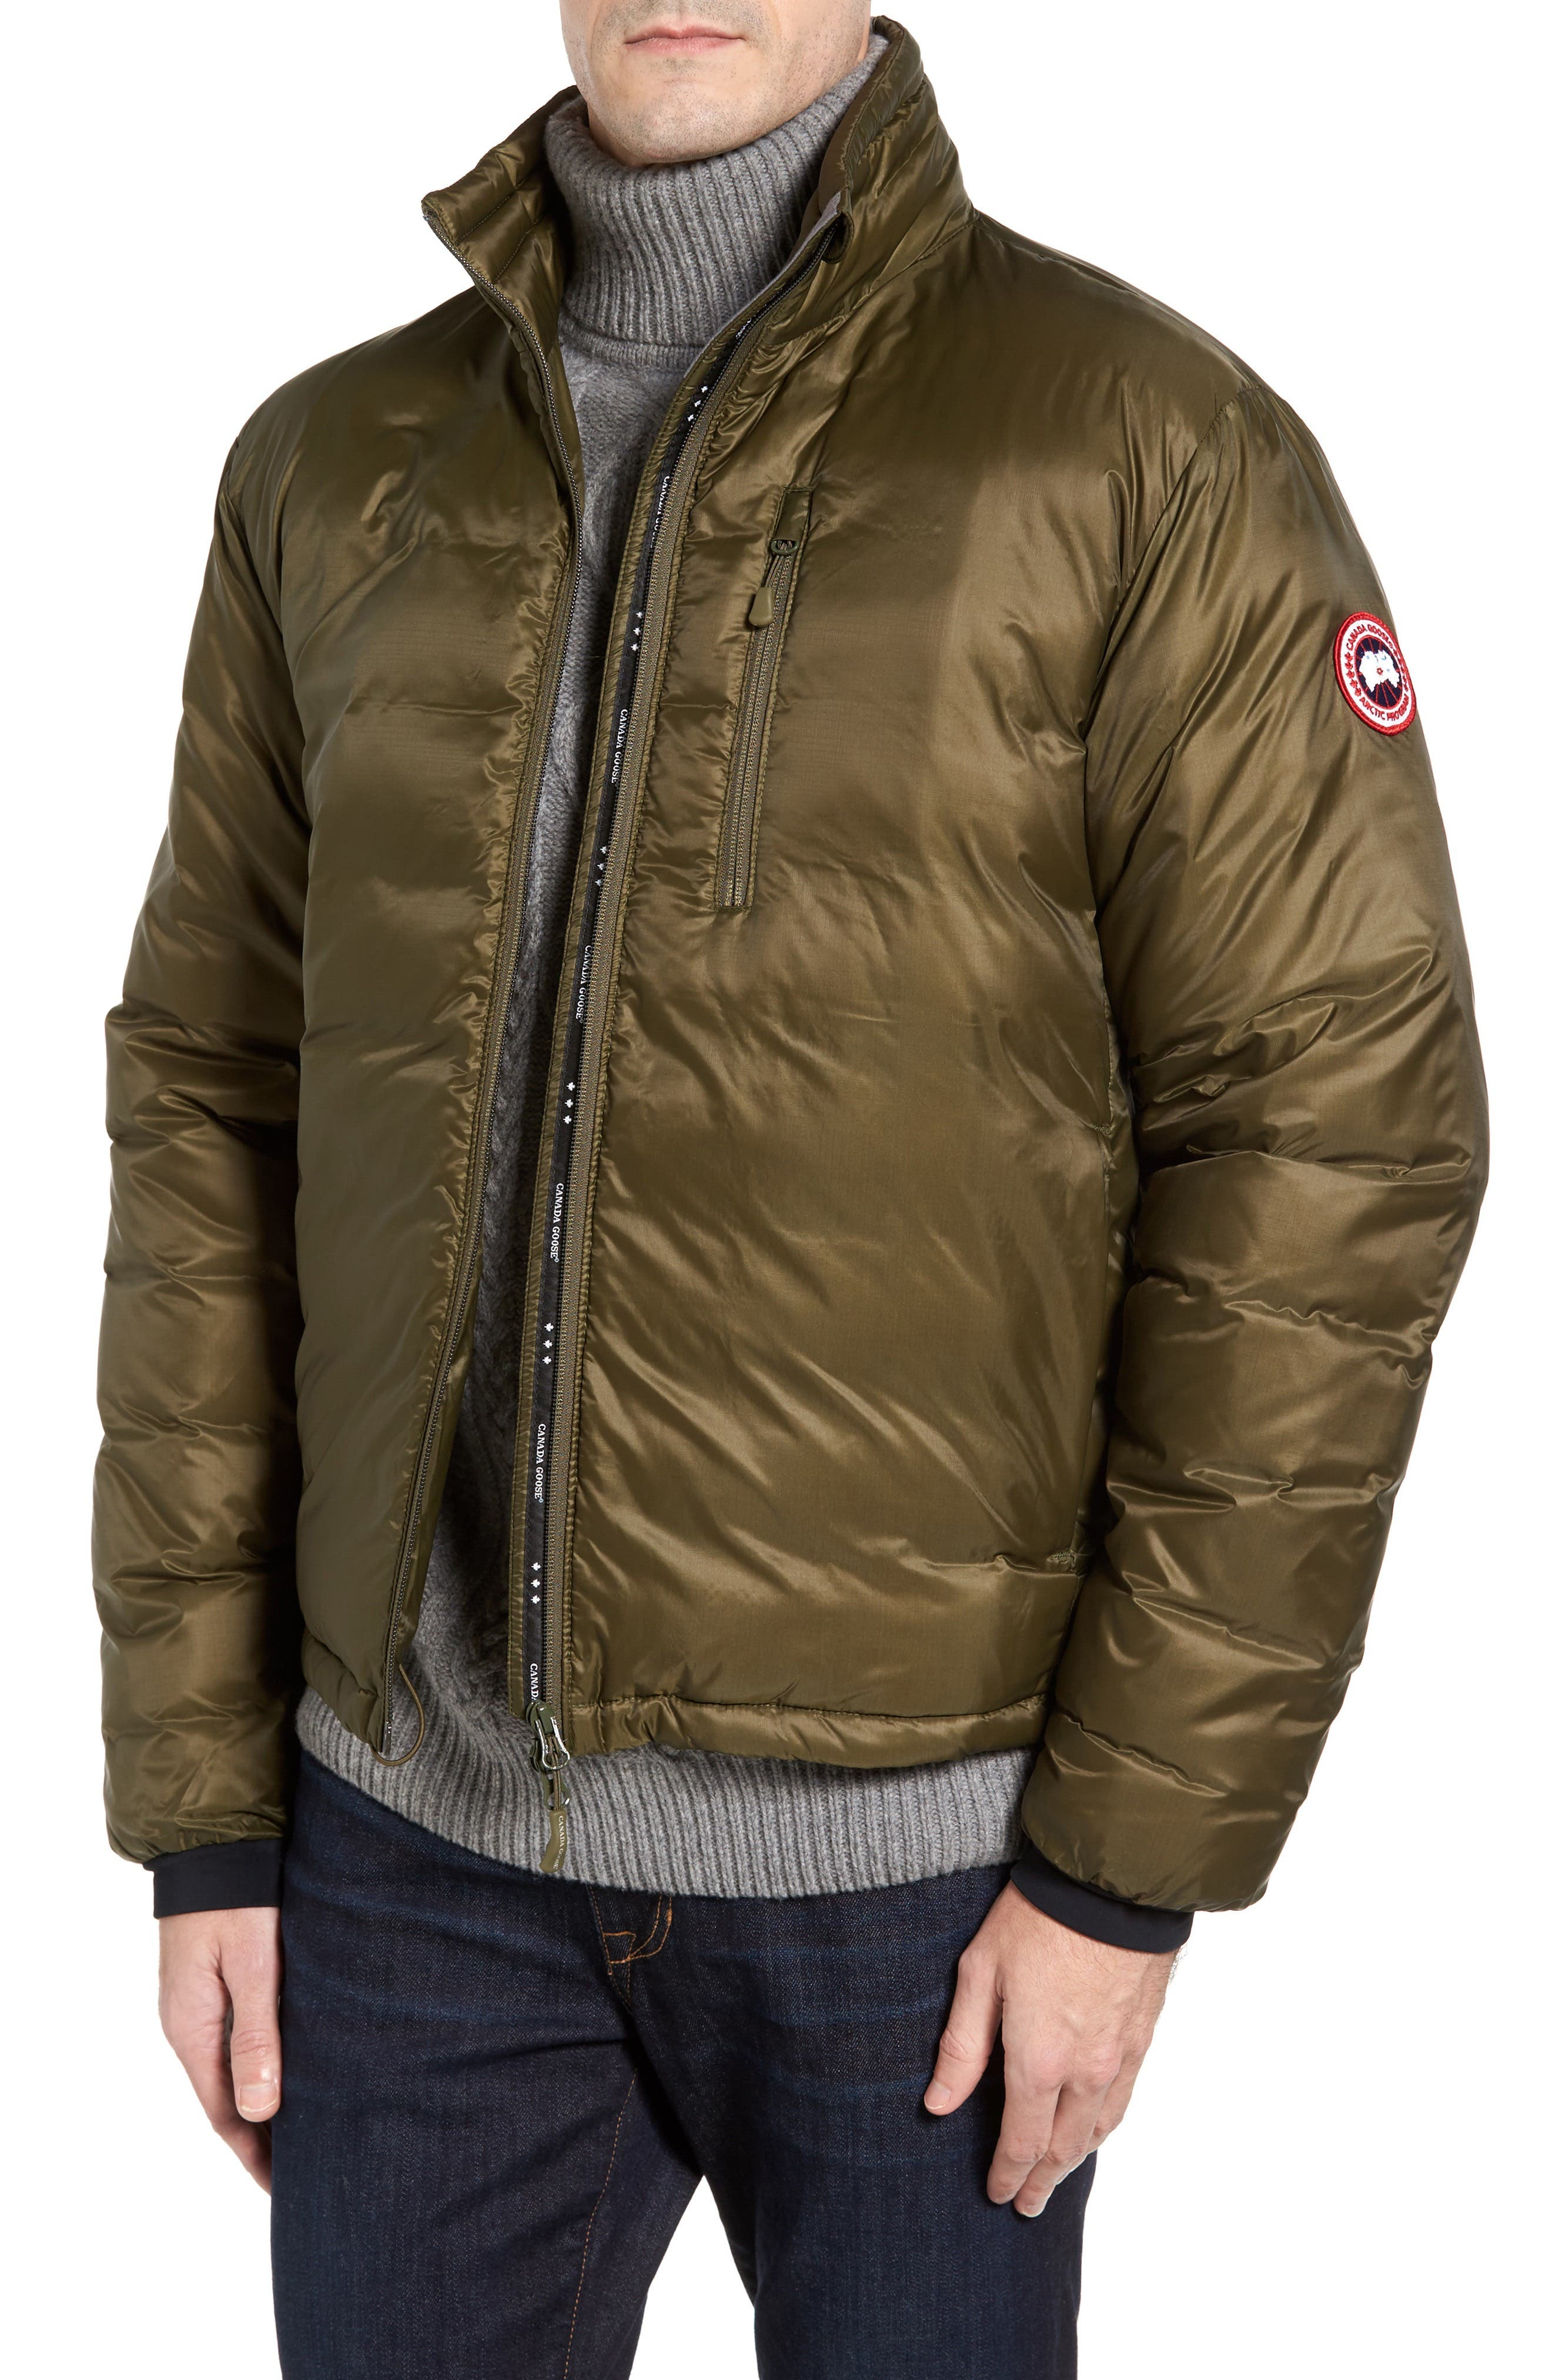 Alternate Image 1 Selected - Canada Goose 'Lodge' Slim Fit Packable Windproof 750 Down Fill Jacket